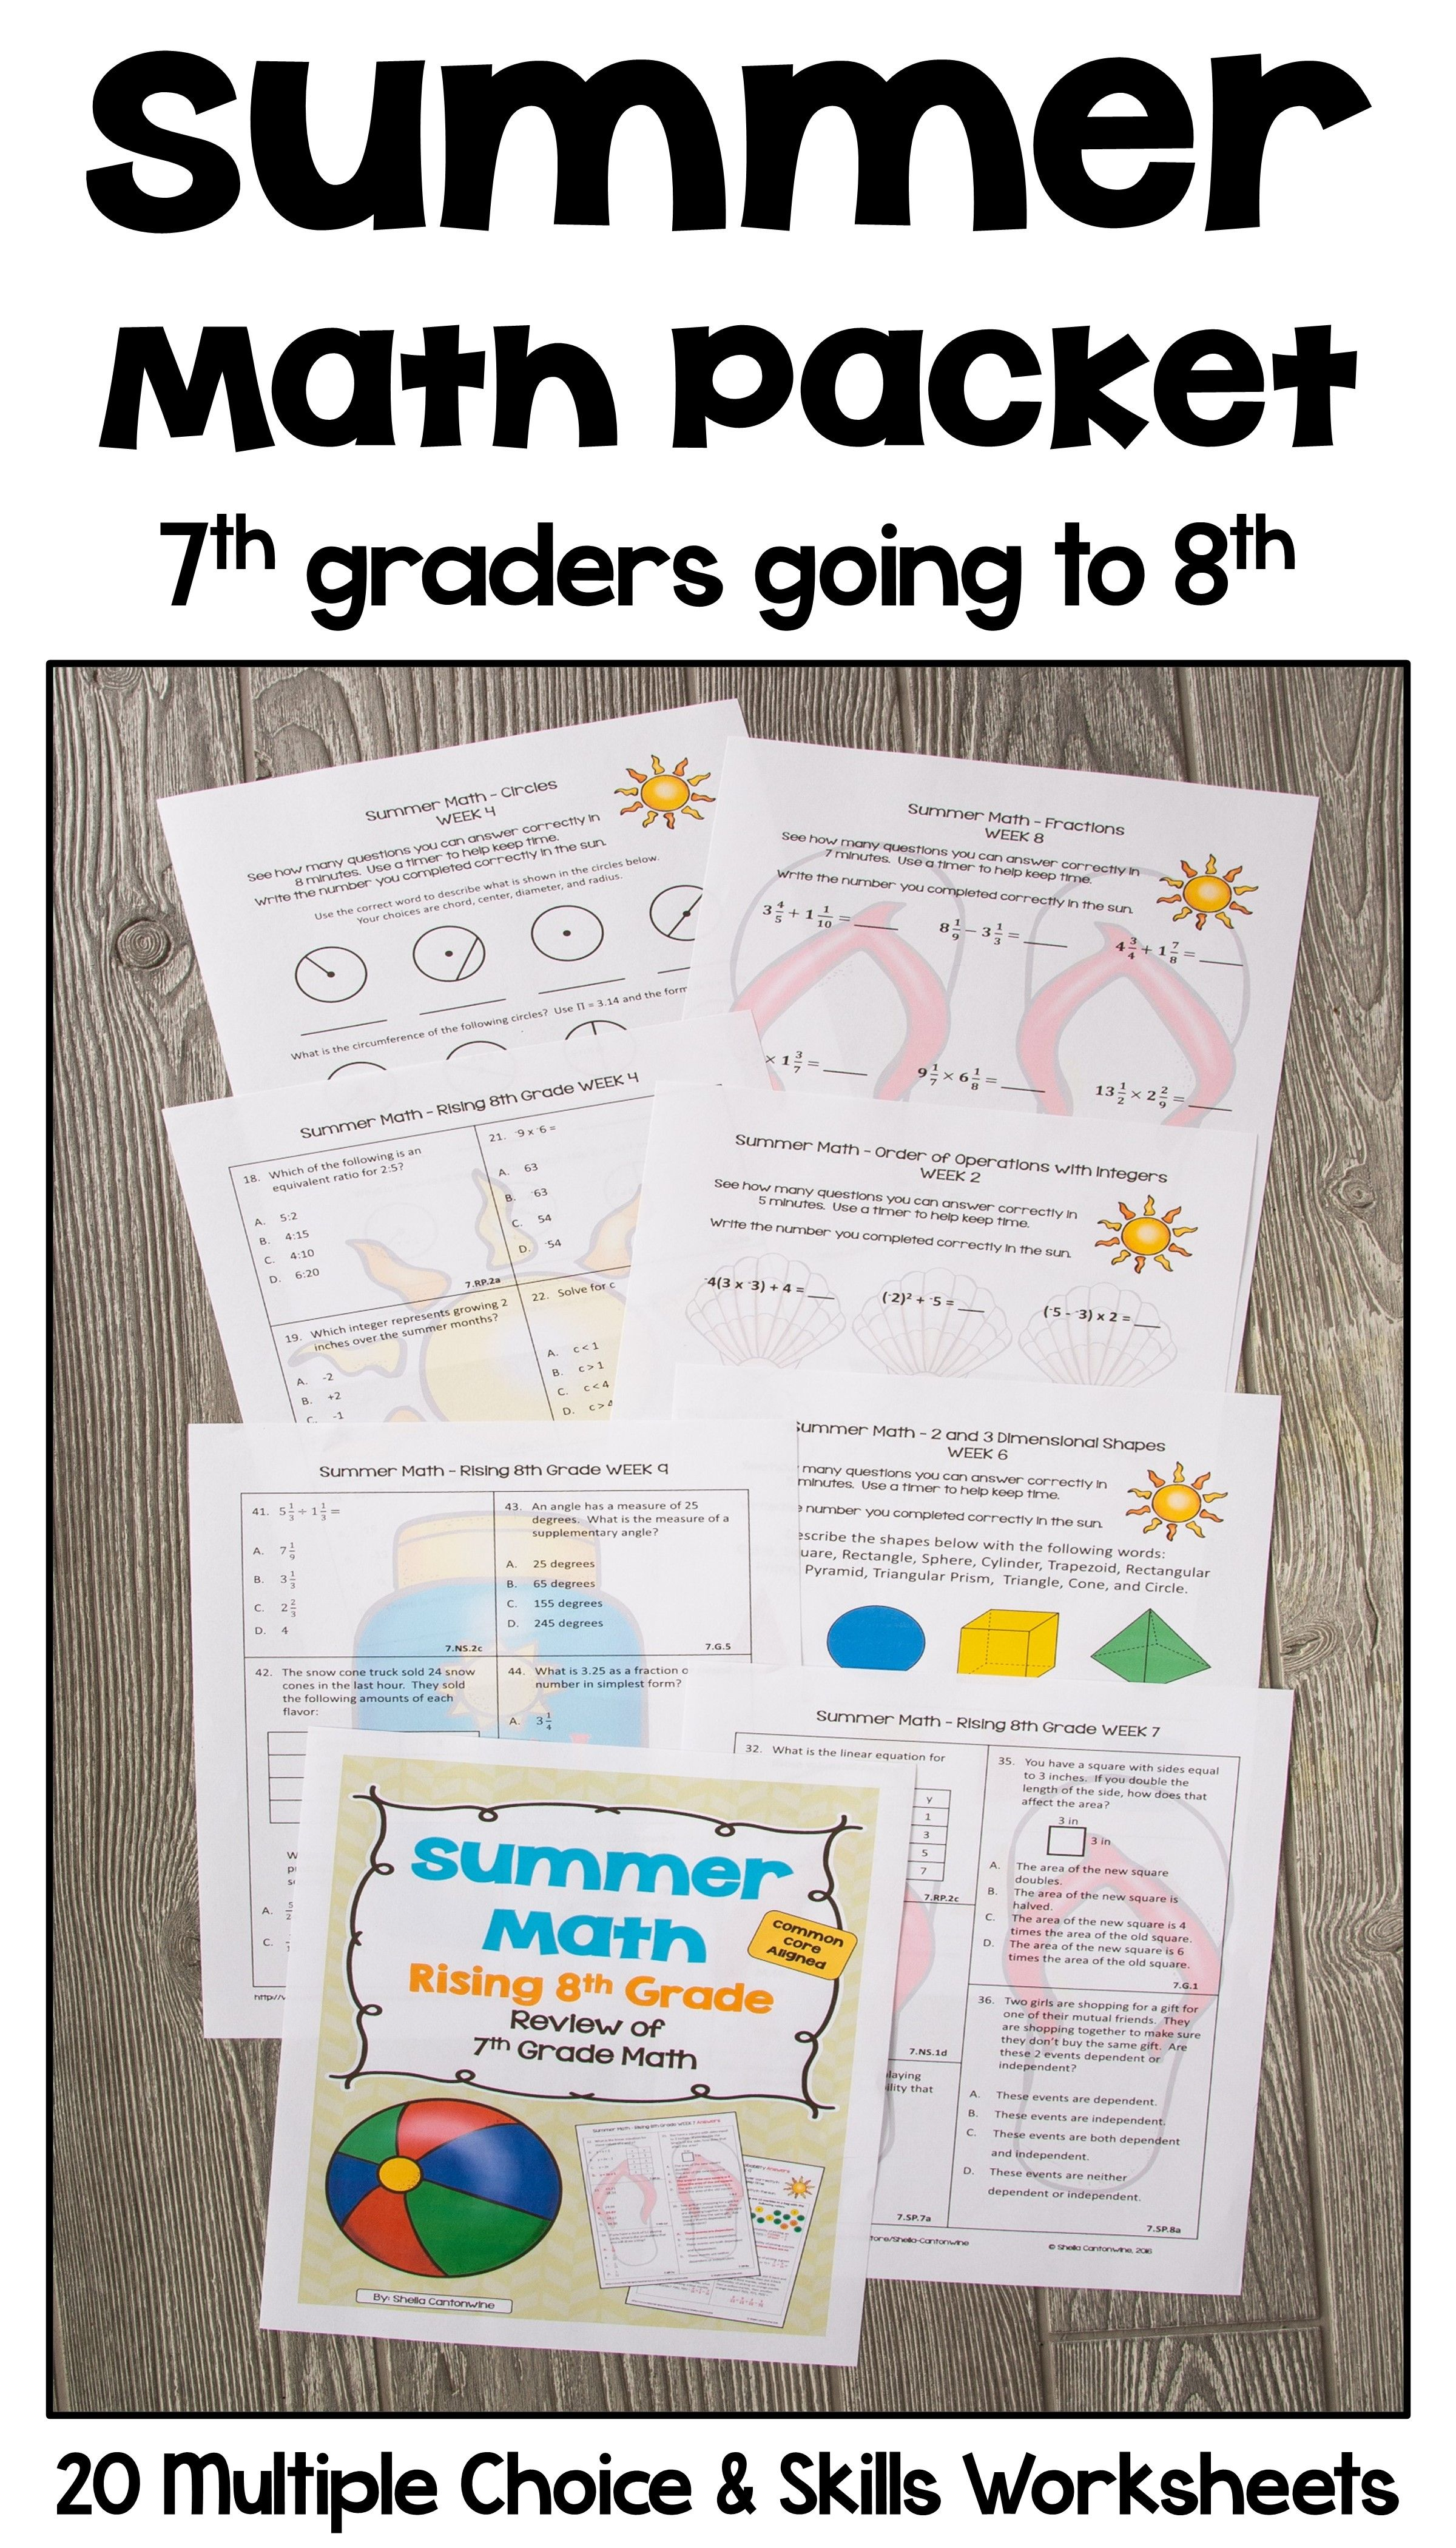 Summer Math Packet For Rising 8th Graders